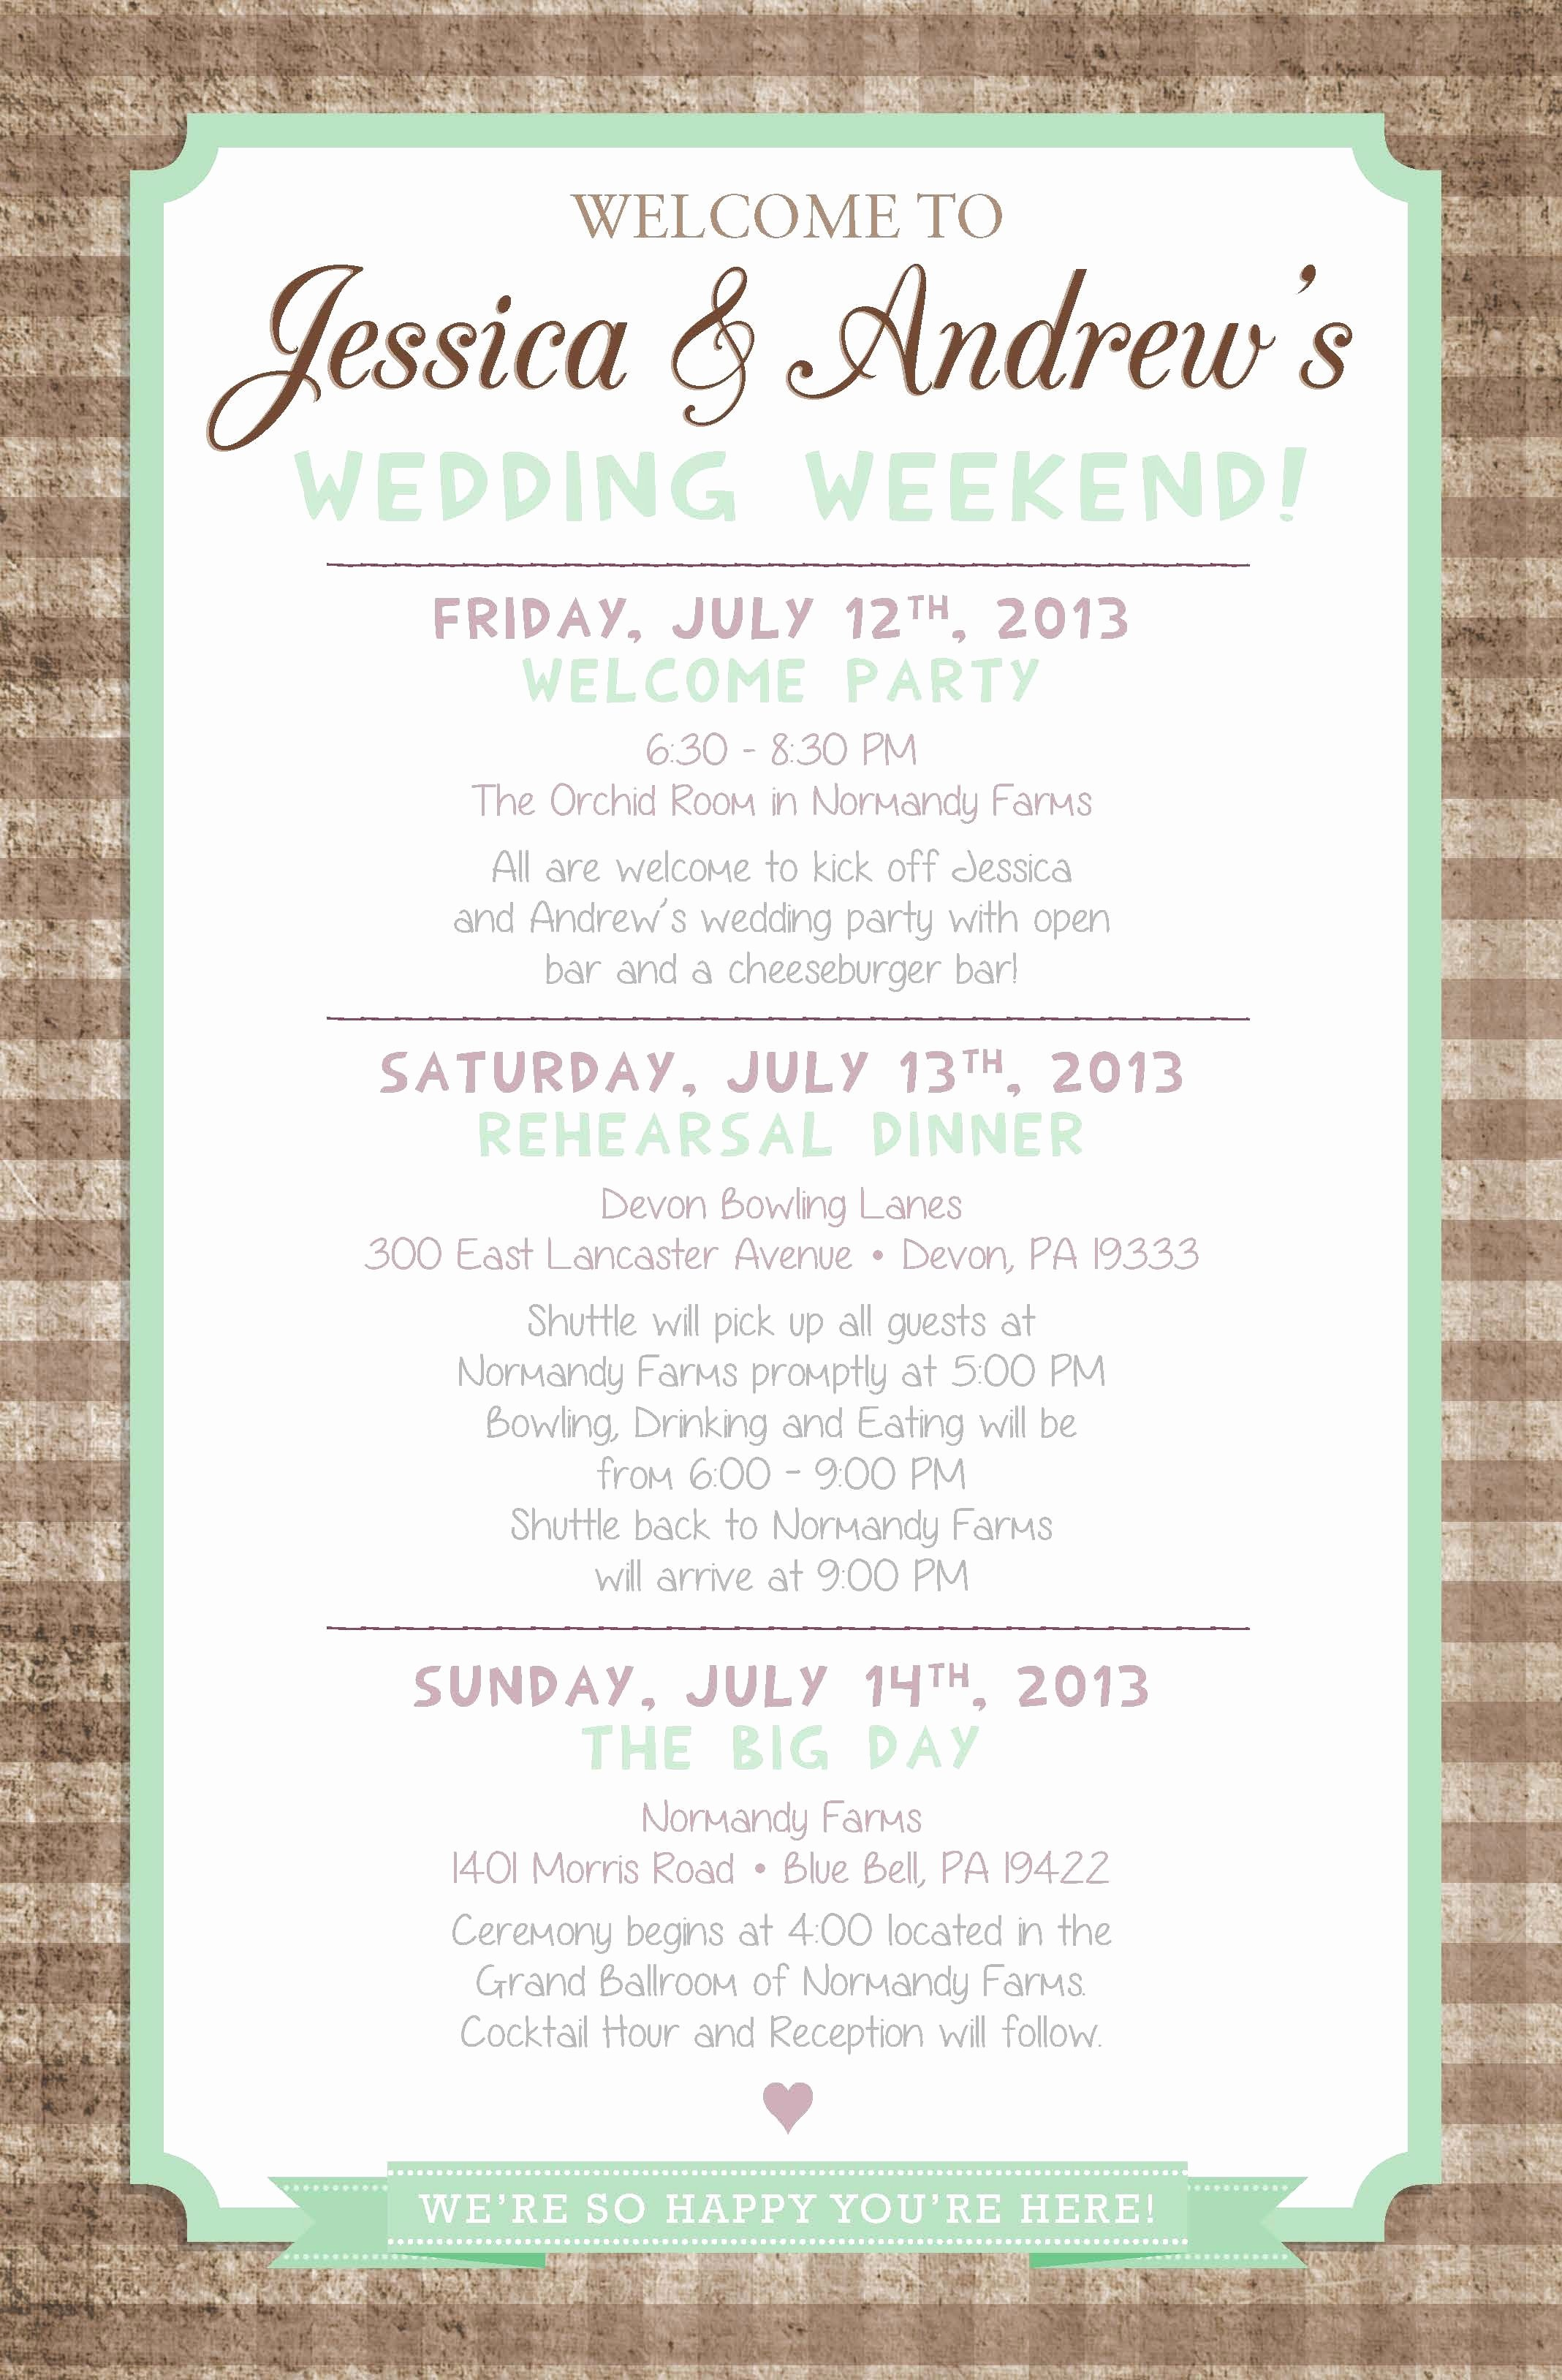 Destination Wedding Itinerary Template Unique Country Chic Wedding Weekend Itinerary by Paper & Lace Paperandlacecreations